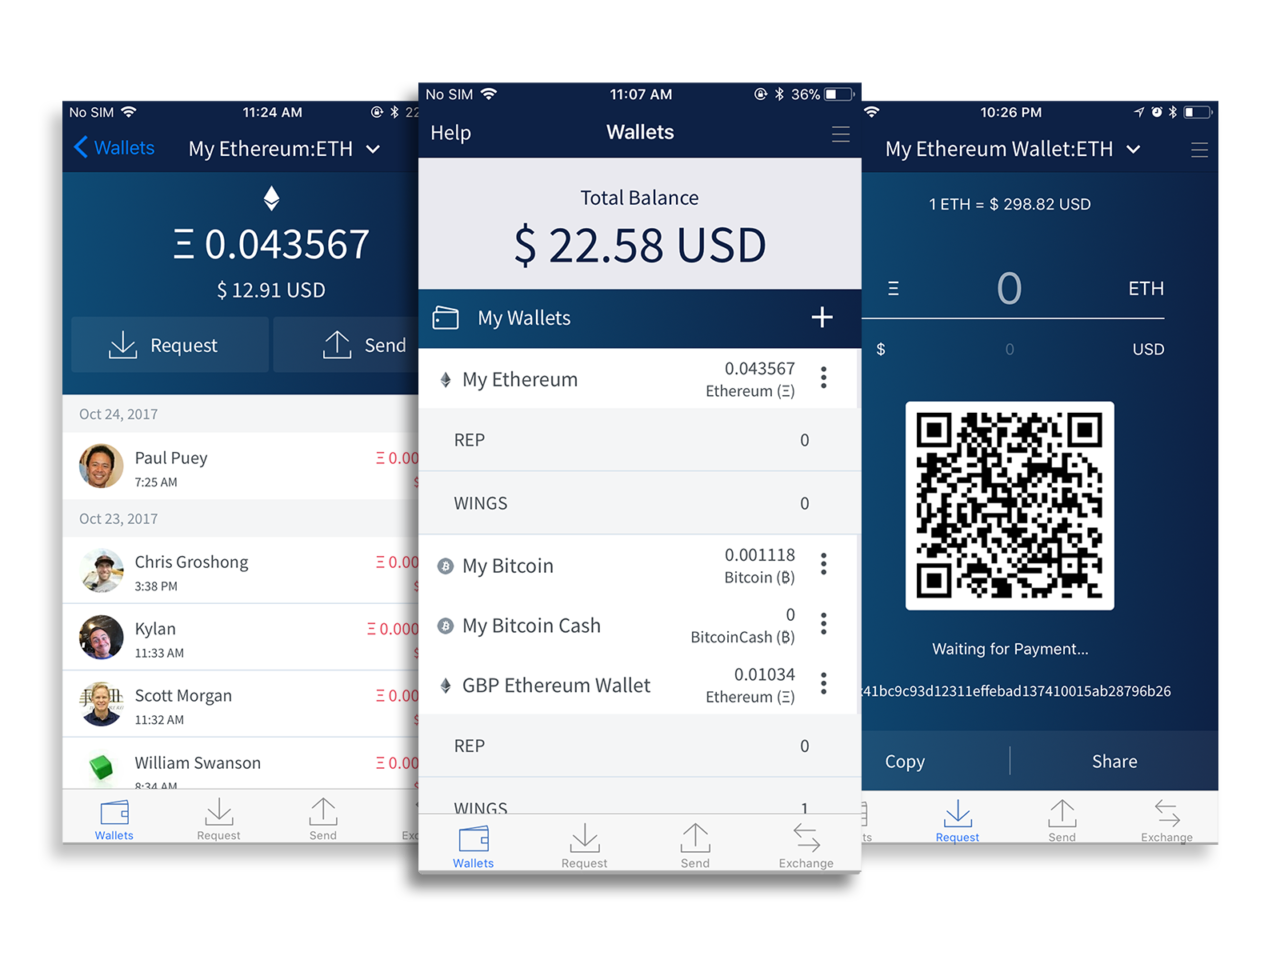 How to get bitcoin cash out of airbitz wallet who trades litecoin how to get bitcoin cash out of airbitz wallet who trades litecoin ccuart Image collections